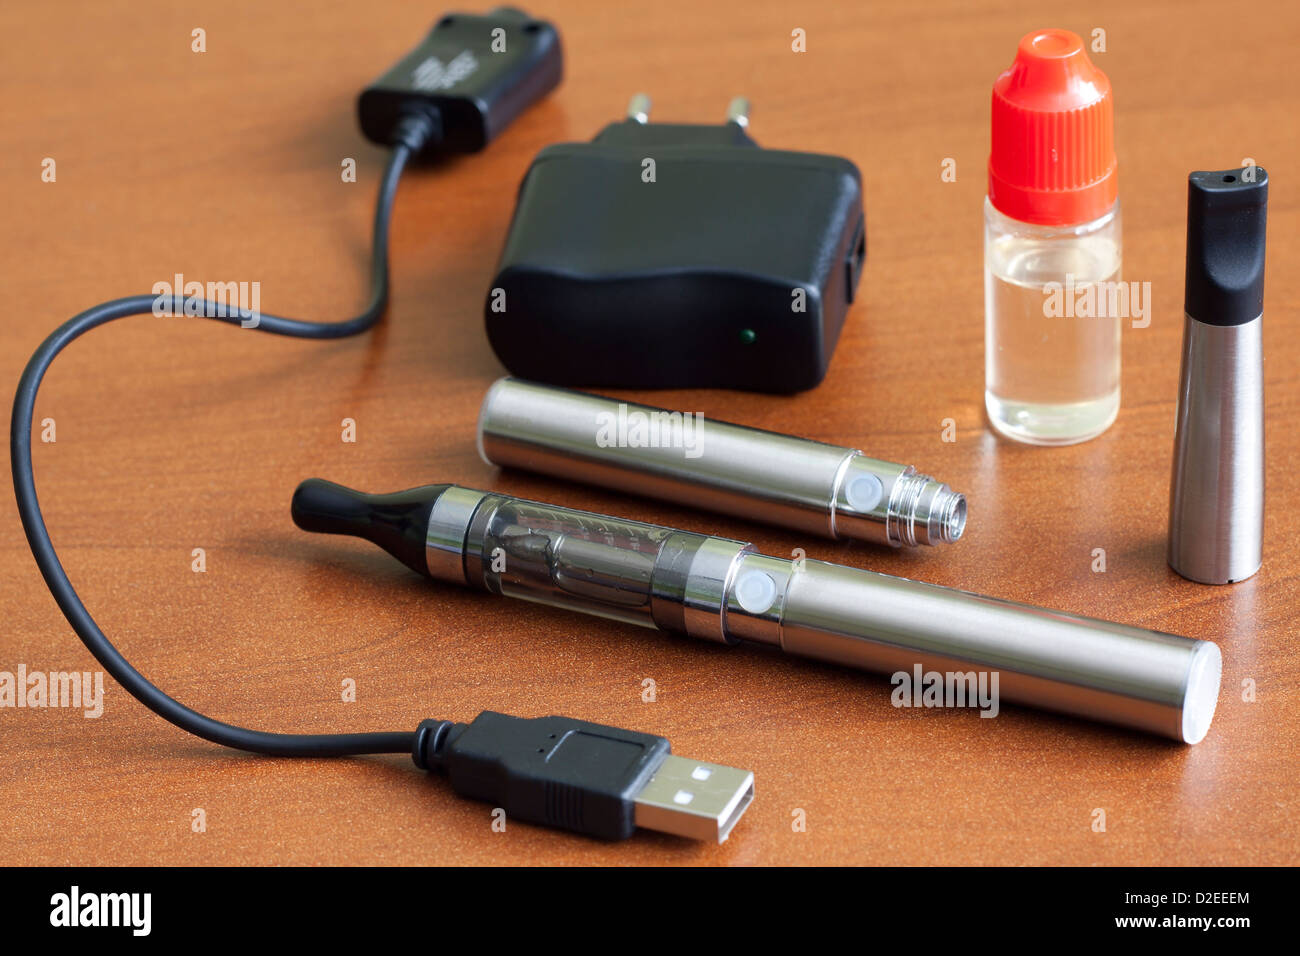 Electronic cigarette on the table closeup - Stock Image